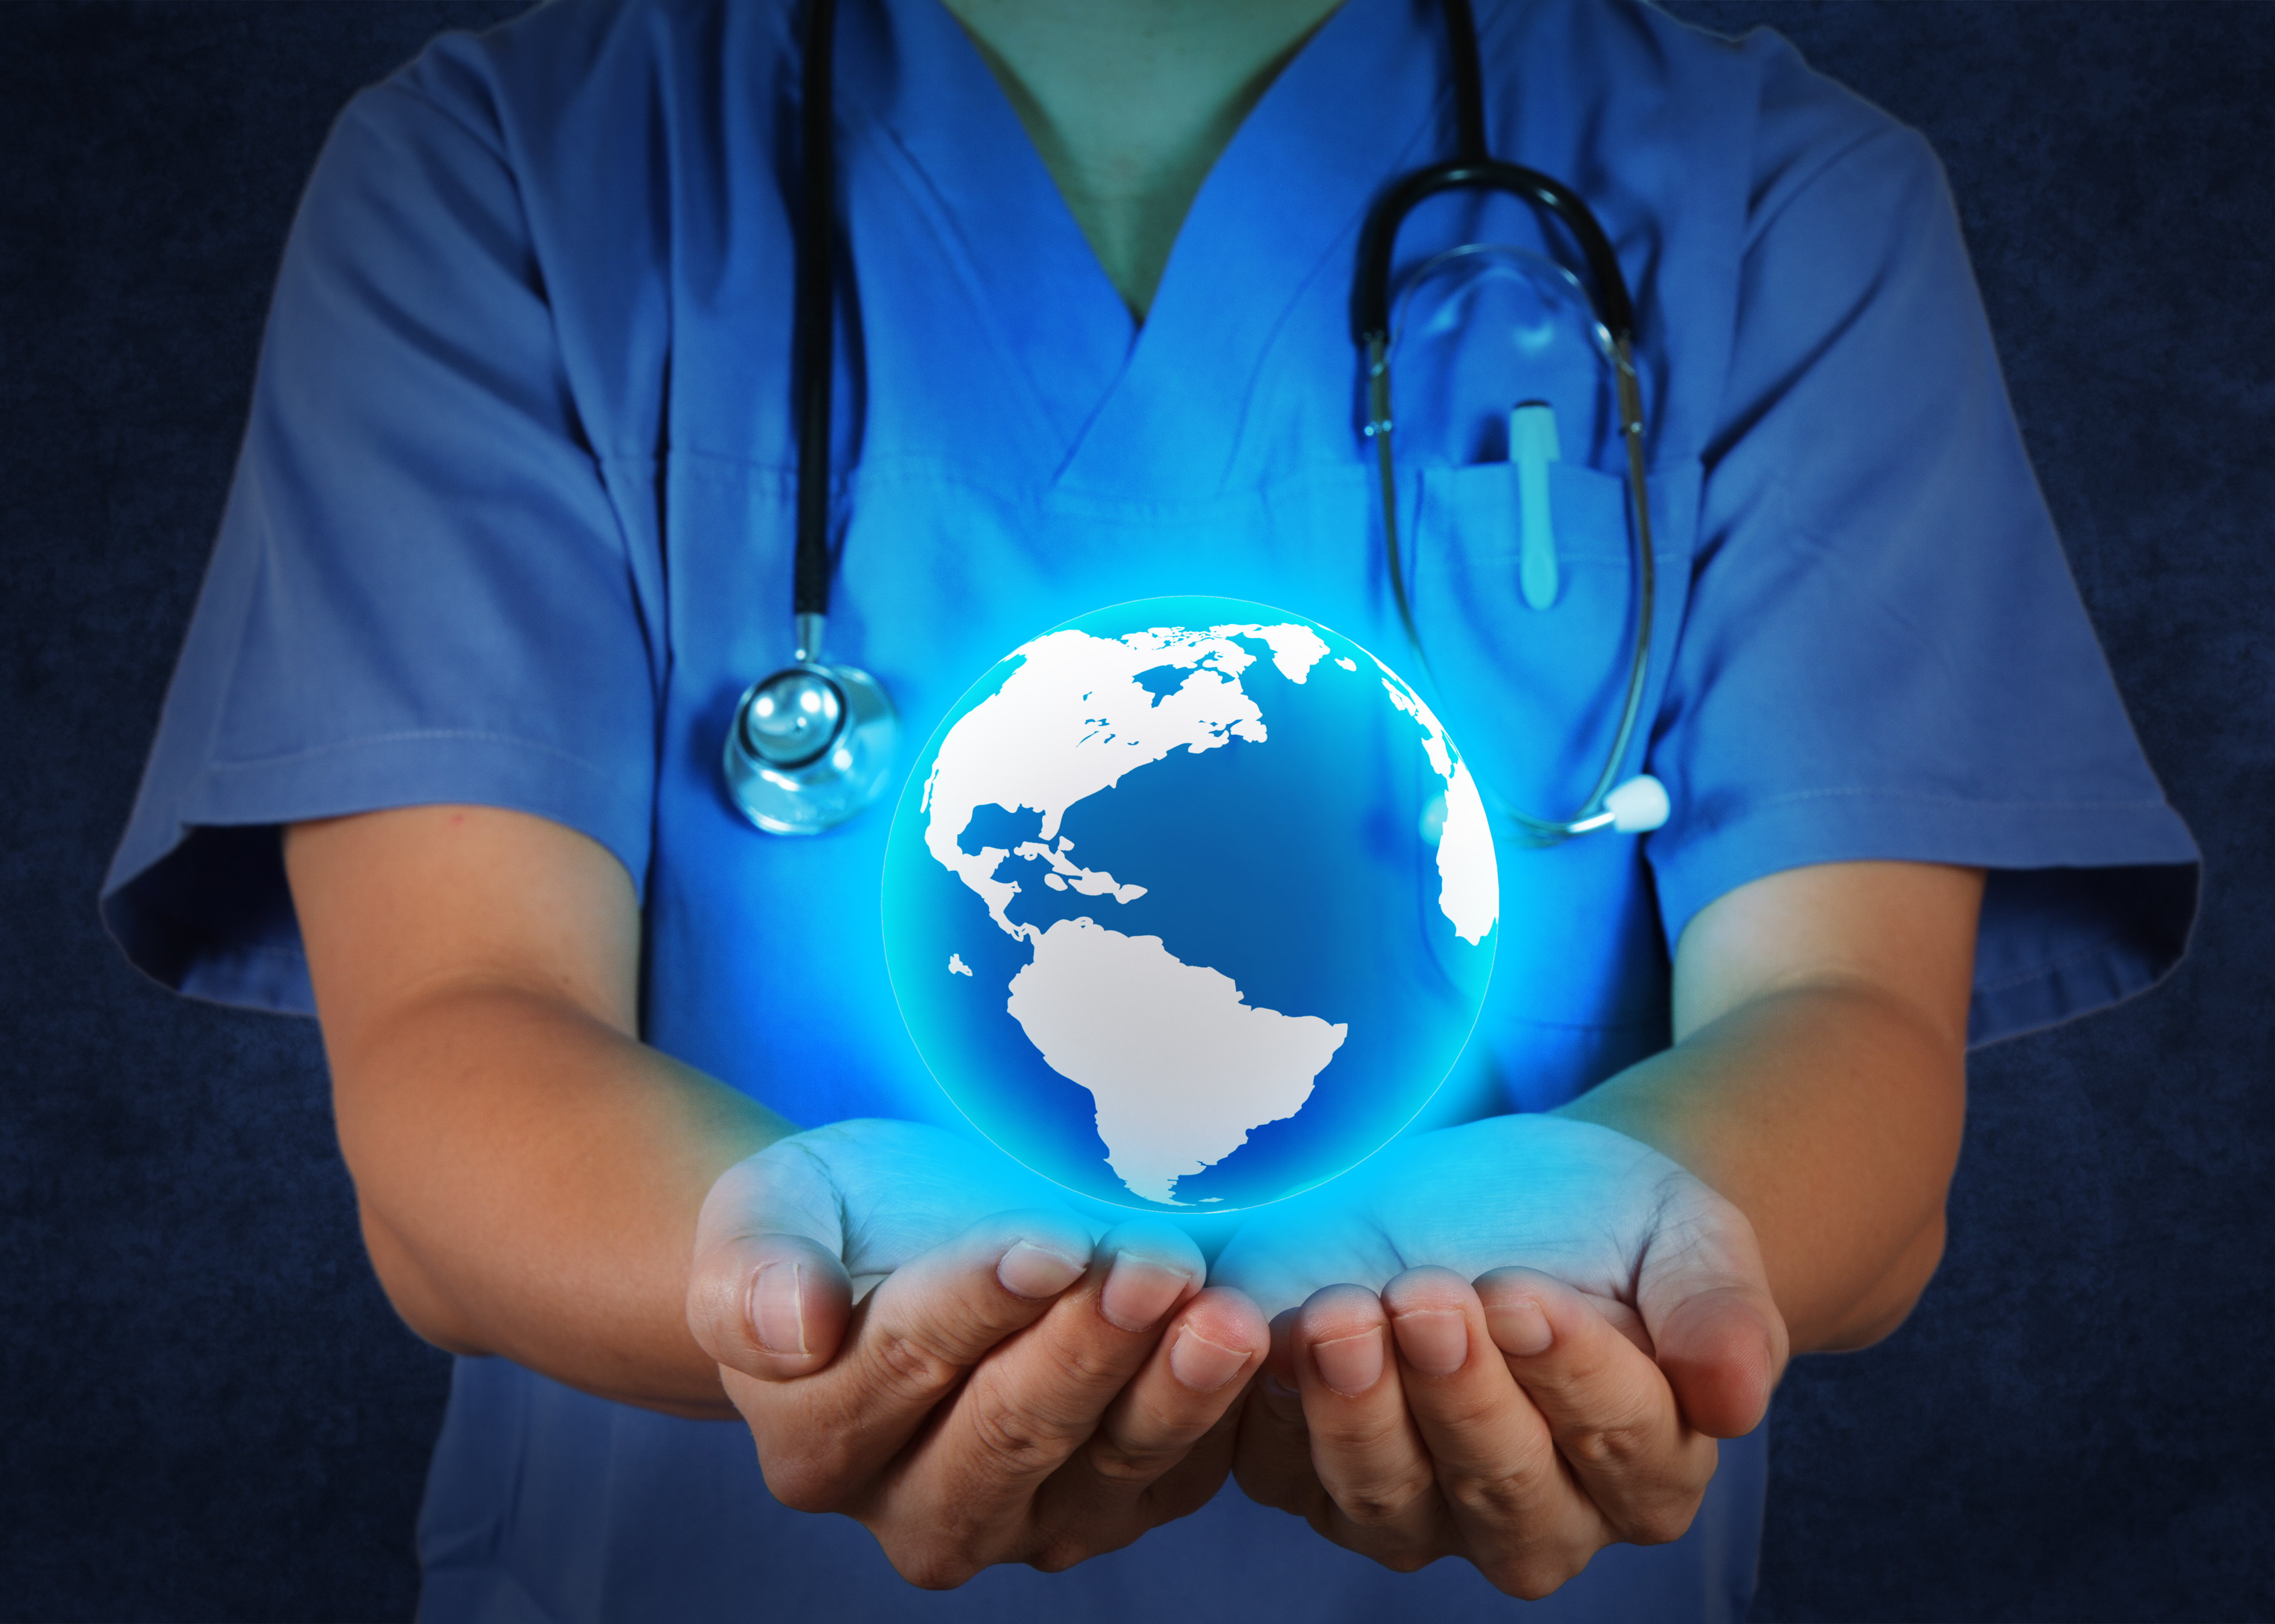 Medical Doctor holding a world globe in